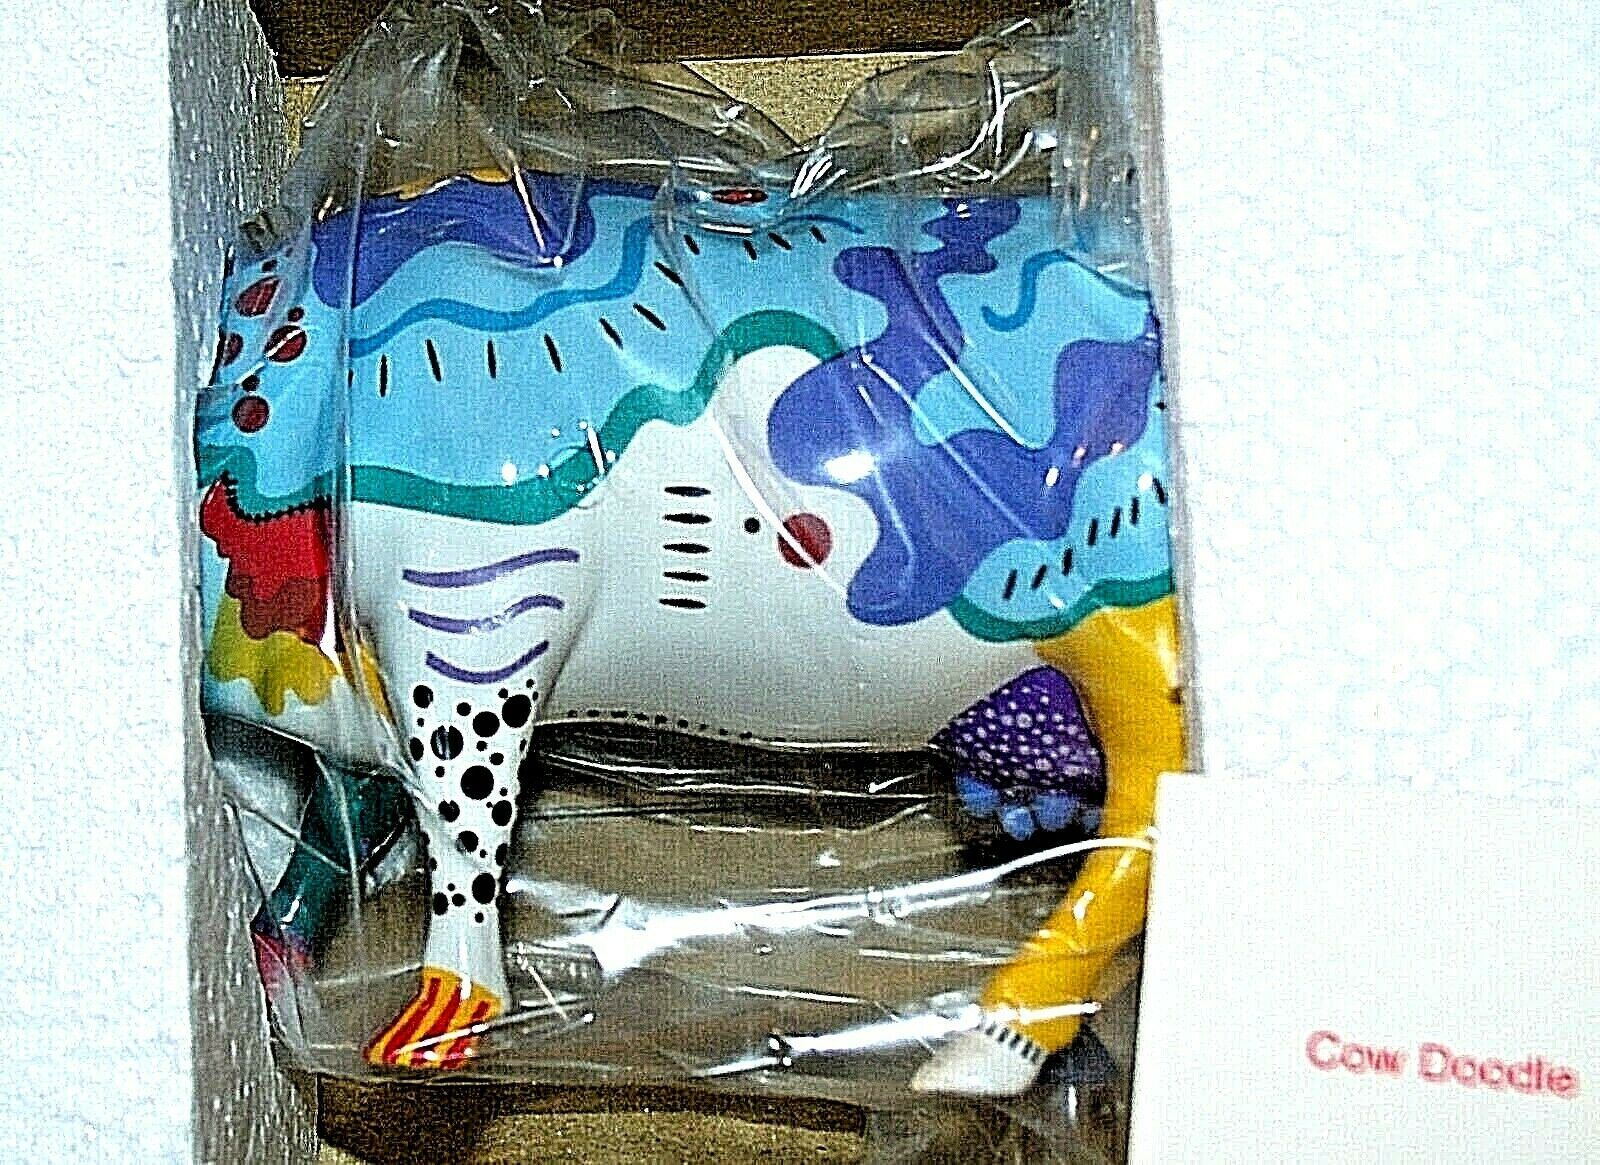 Cows on Parade Cow Doodle Item # 9194 Westland Giftware AA-191874 Vintage Colle